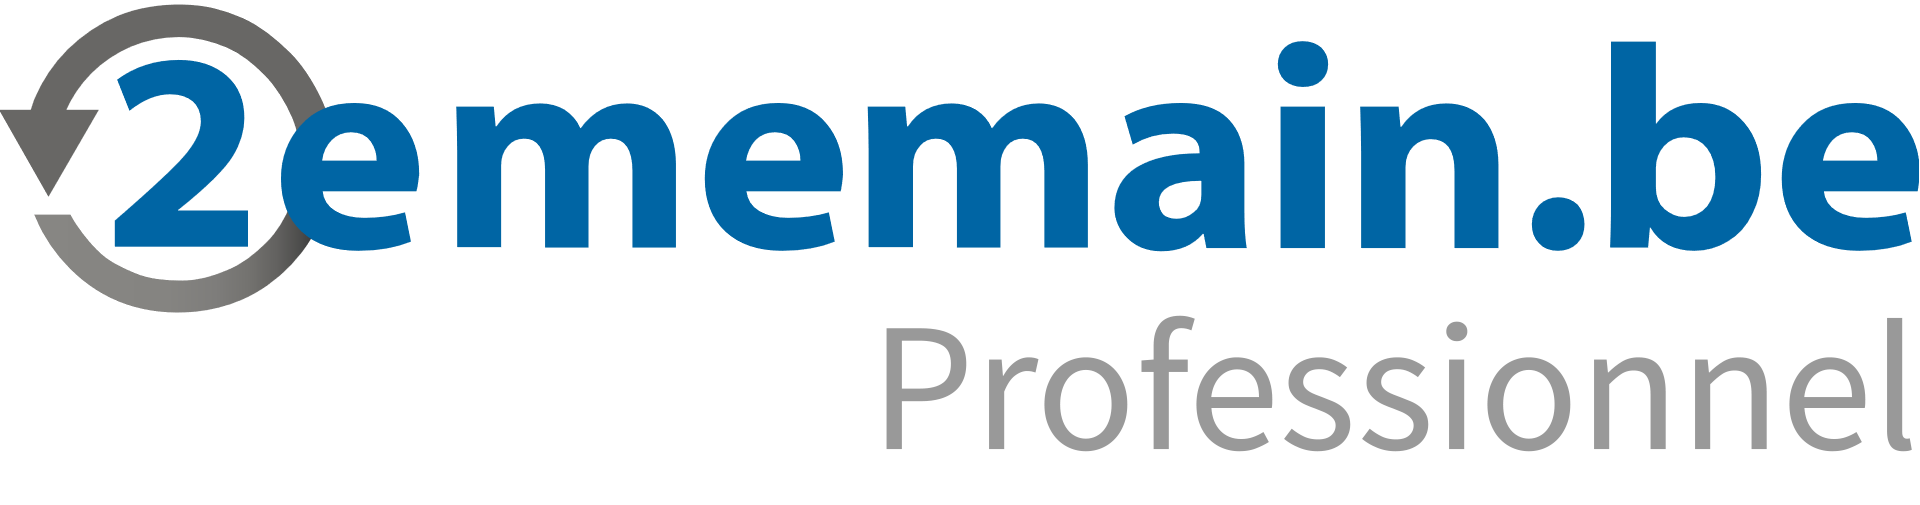 2ememain.be Professionnel logo